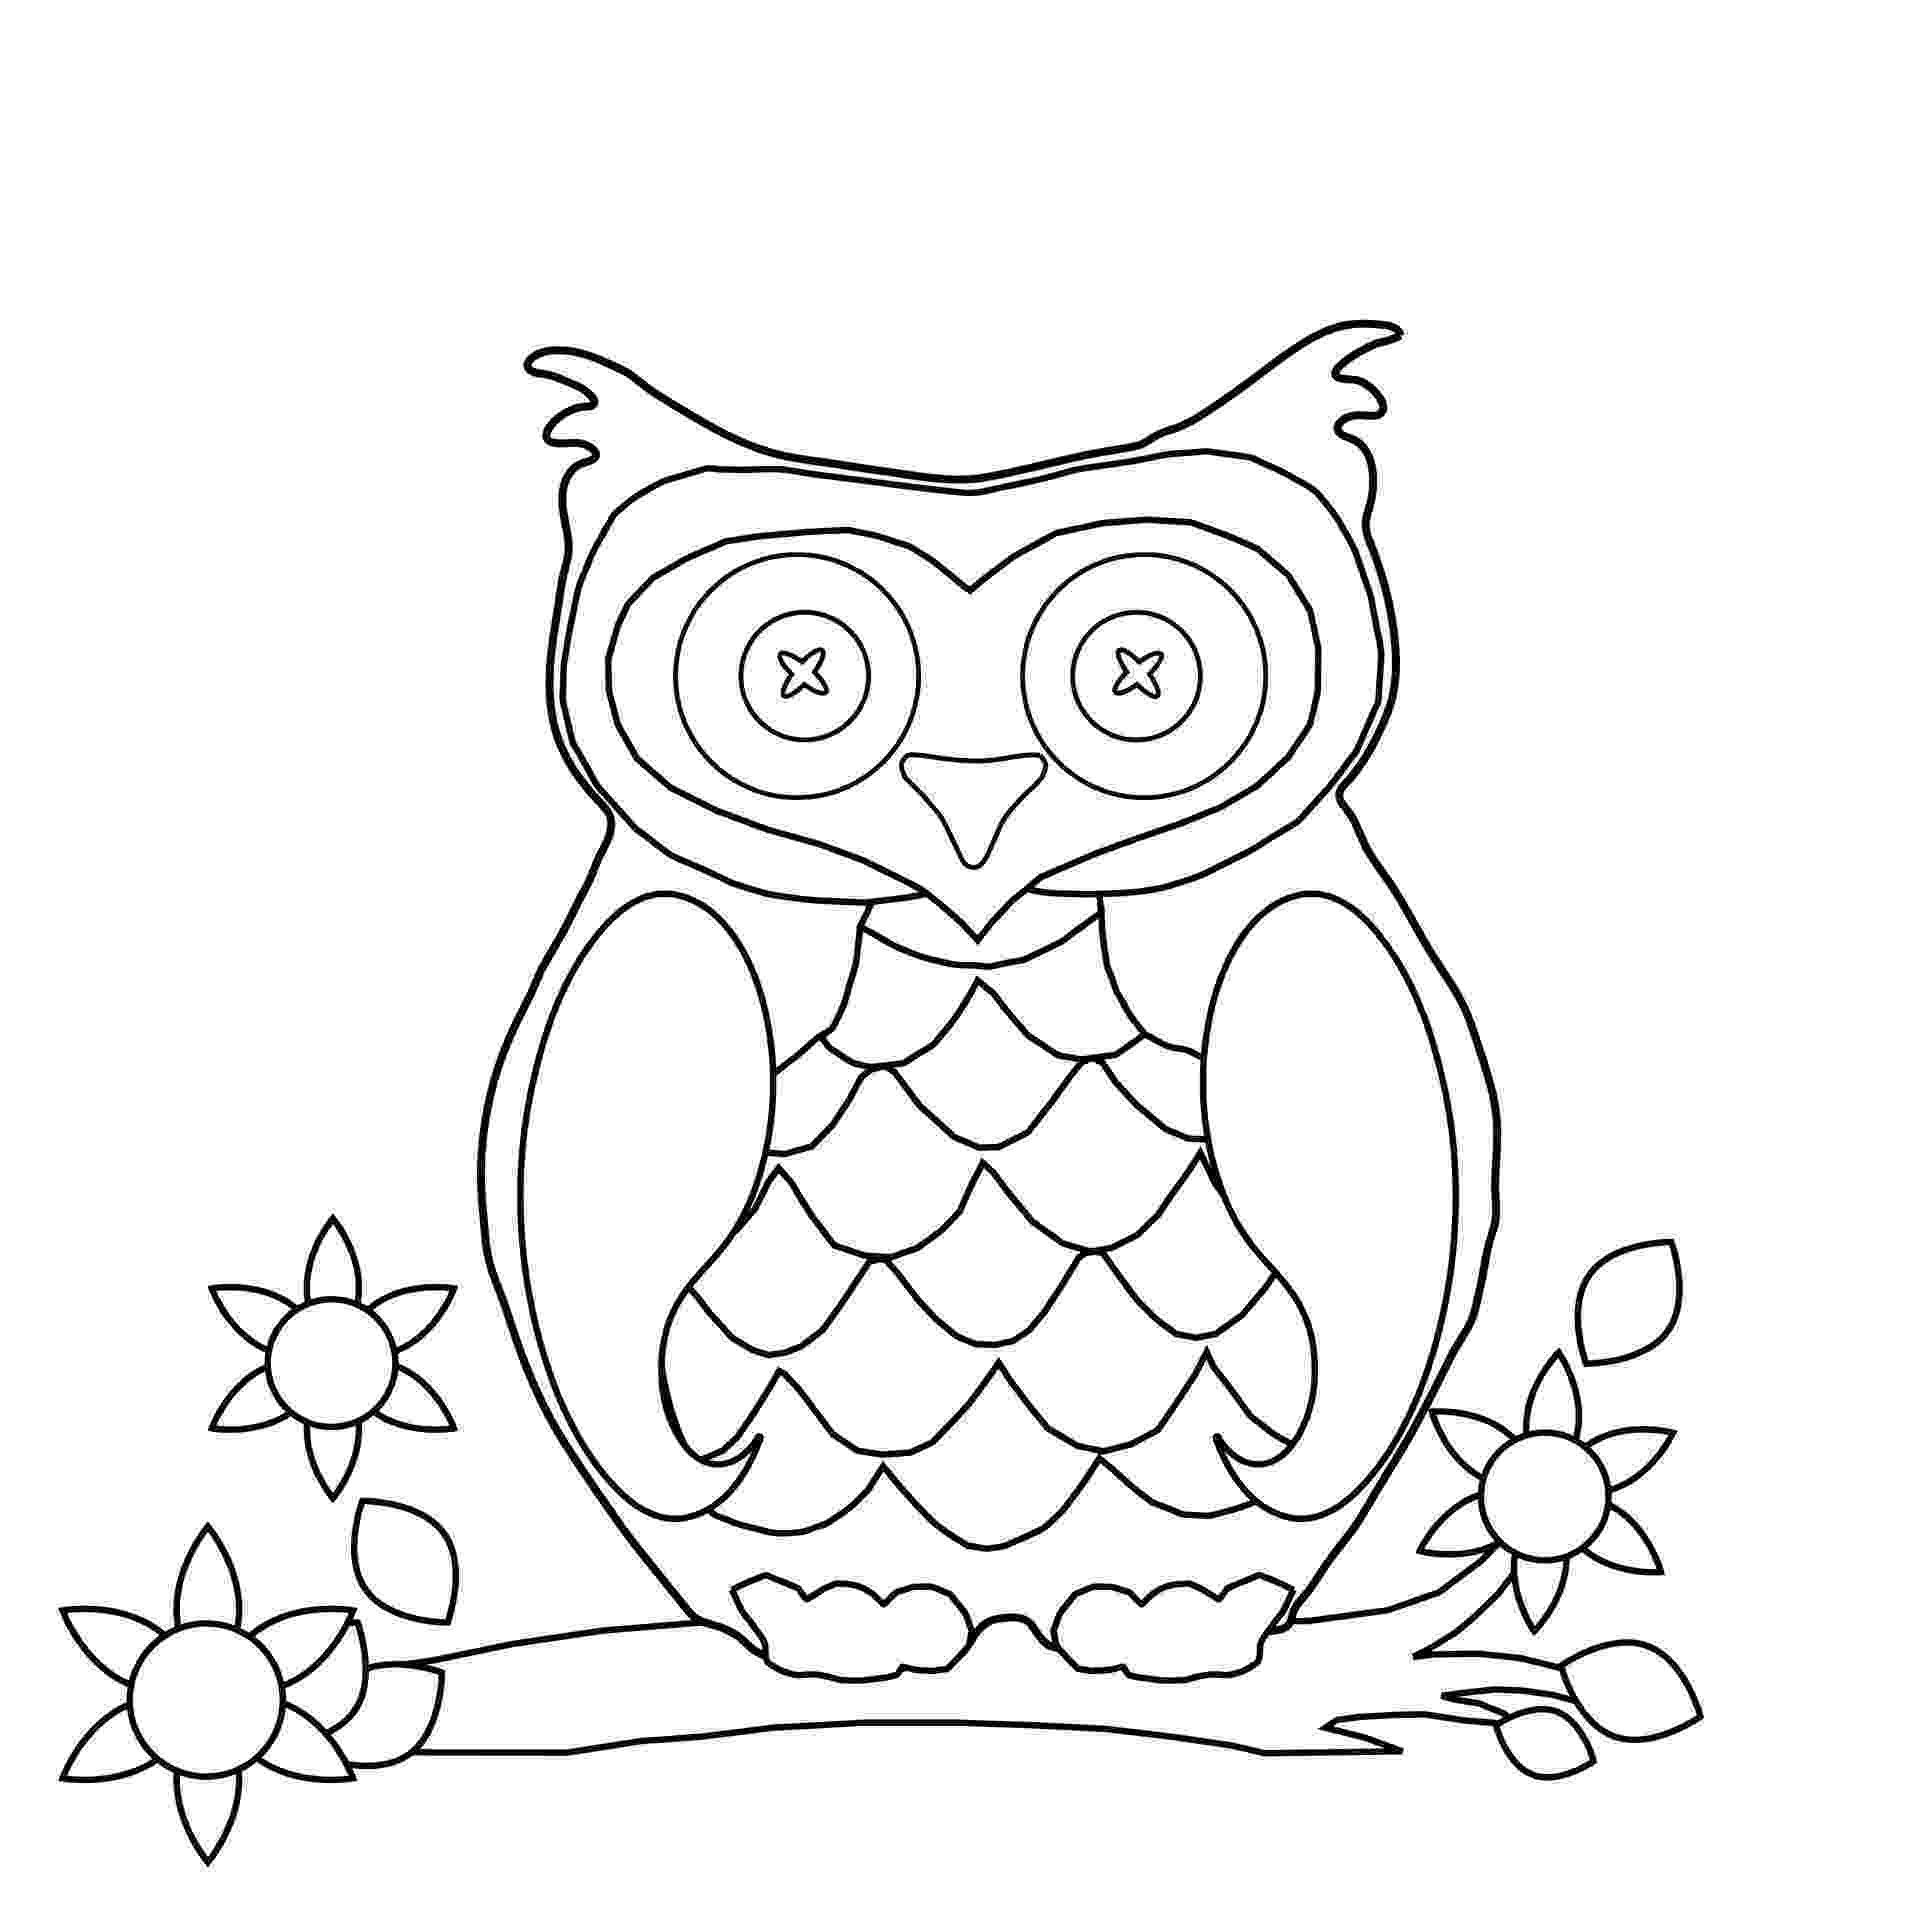 make a coloring page make any picture a coloring page with ipiccy ipiccy page a coloring make